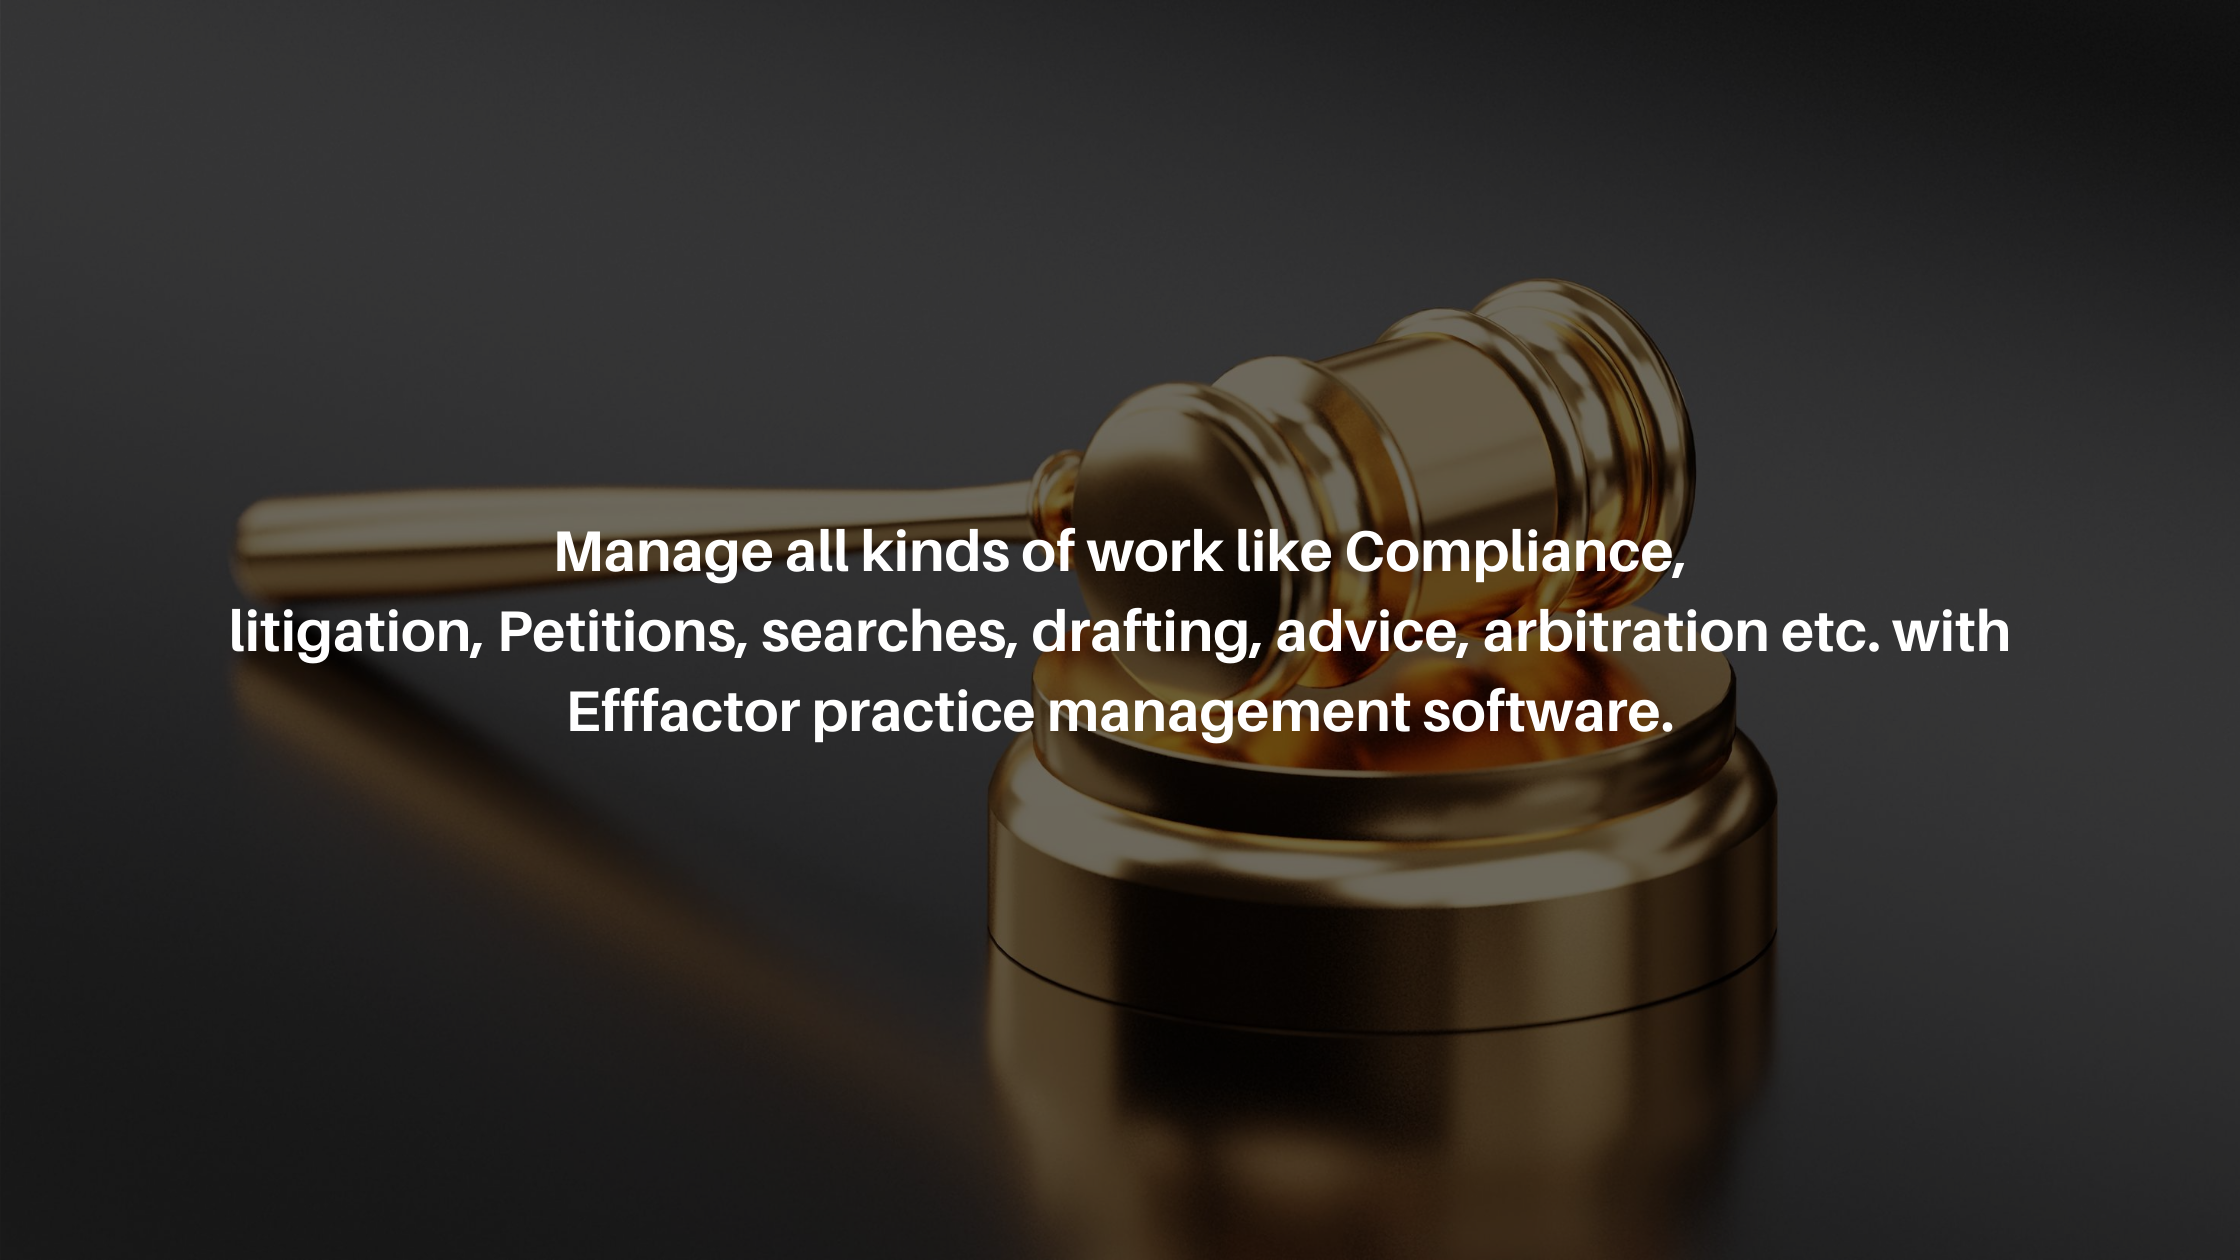 case management and workflow software for law firms